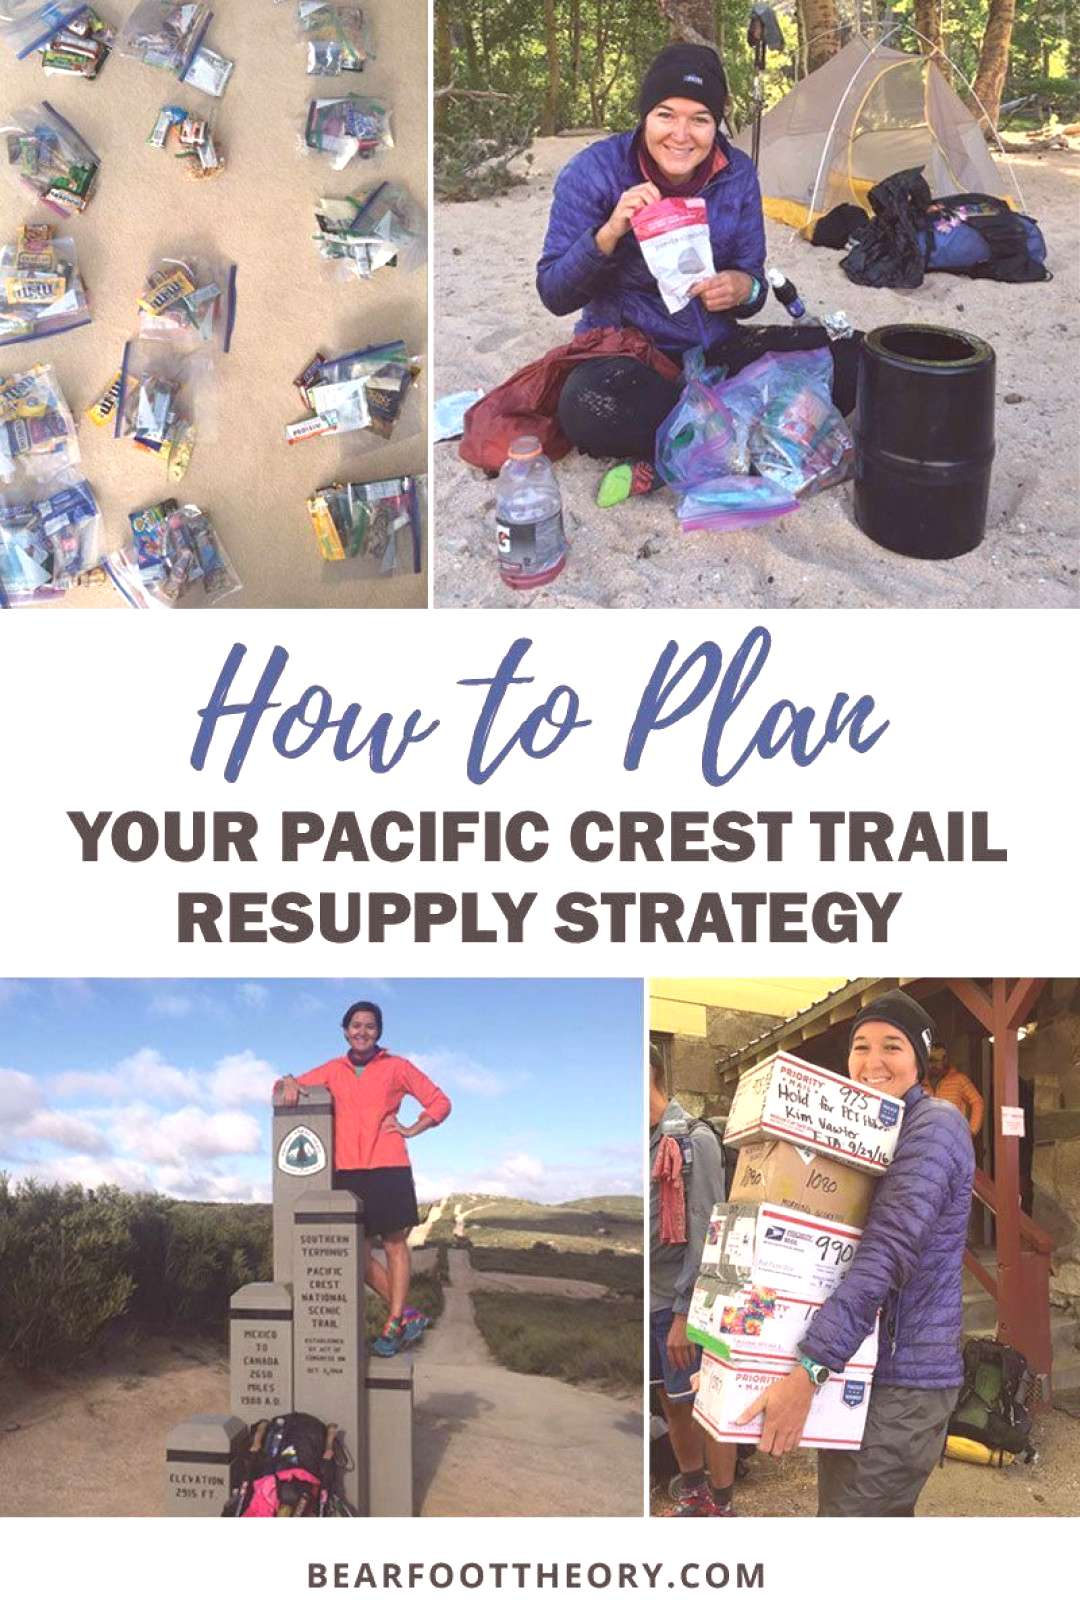 A step-by-step how-to guide for planning your Pacific Crest Trail resupply strategy - including var